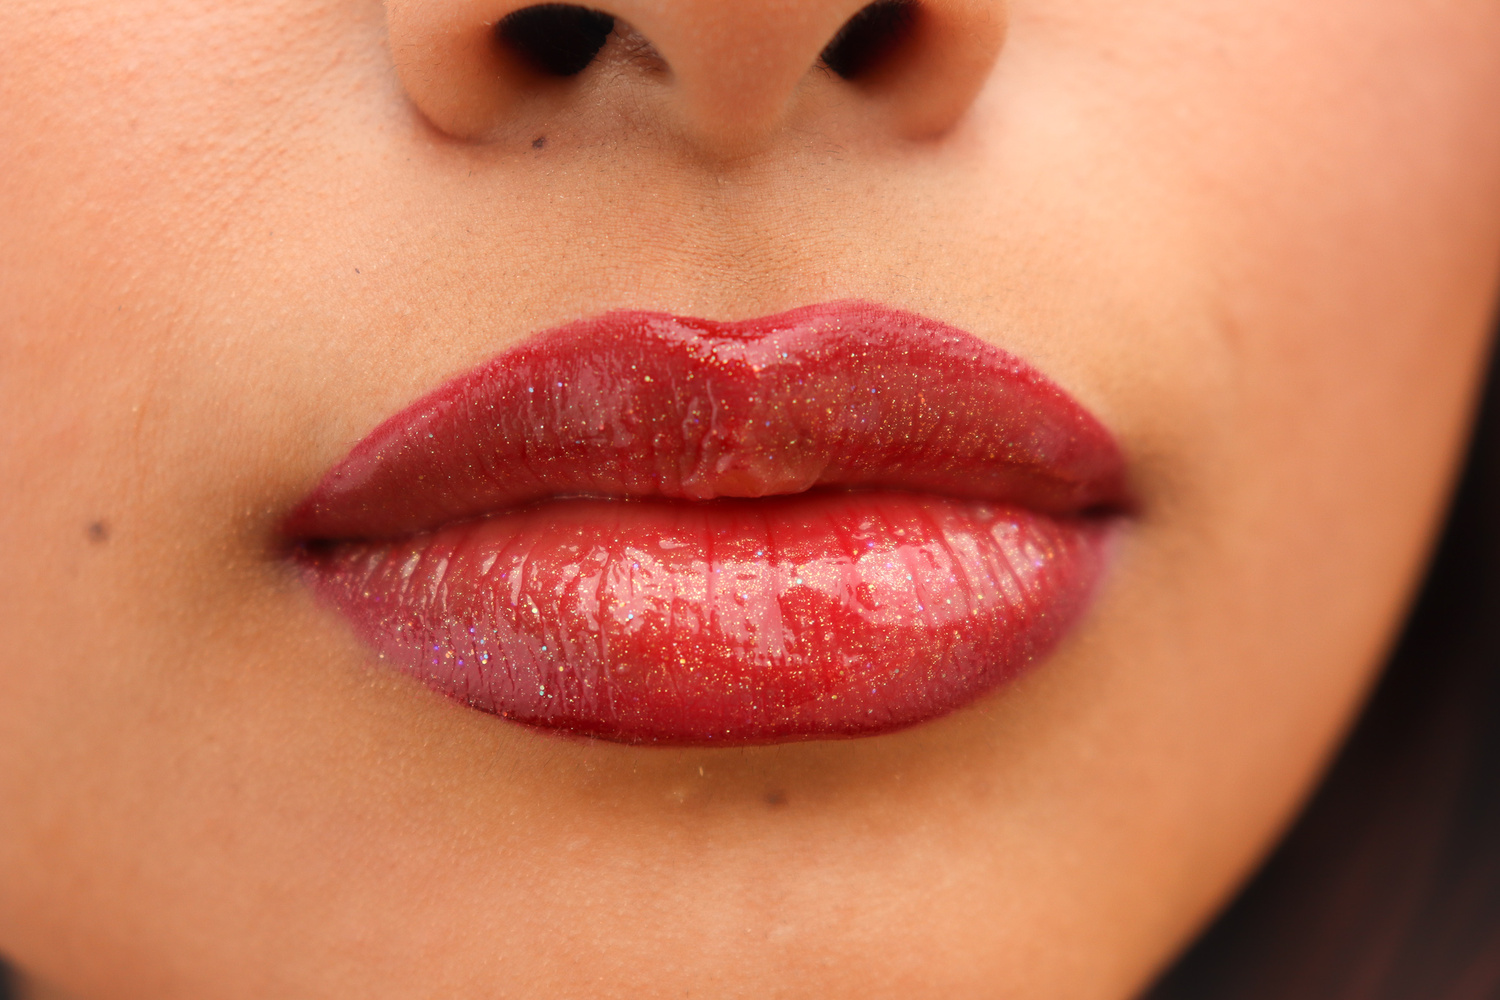 lip product picture for a friends business by Jacqueline Mora